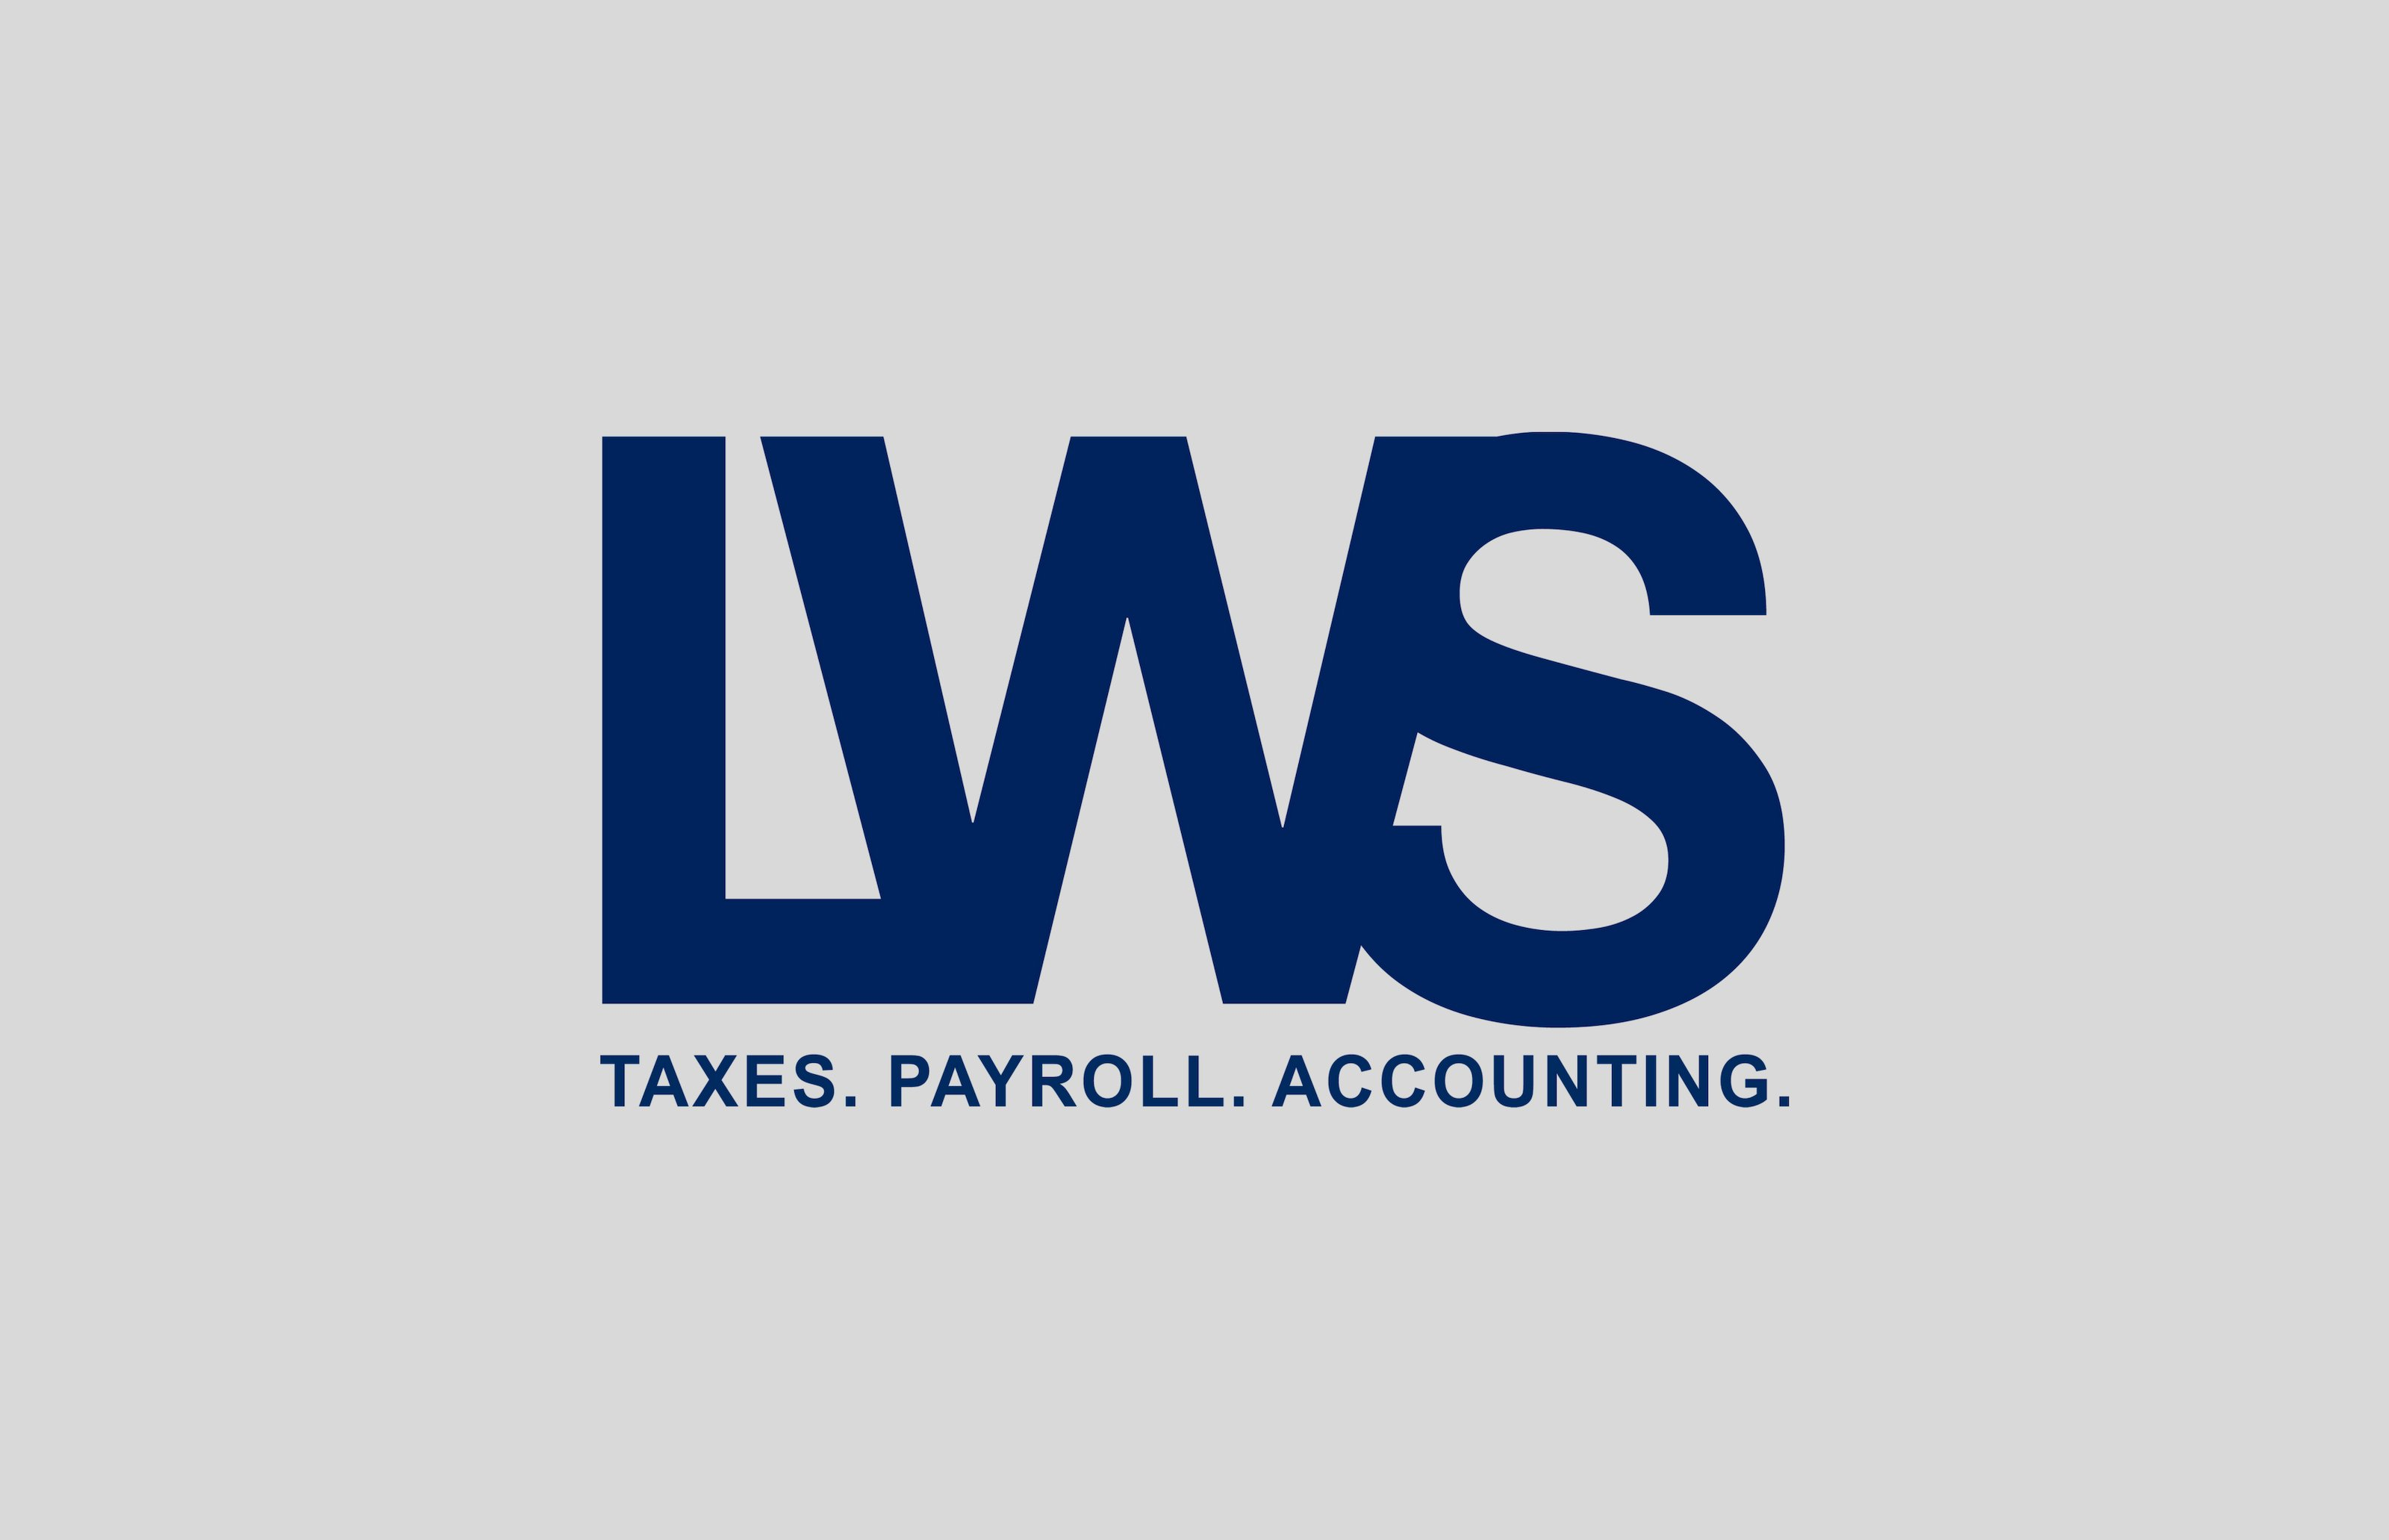 LWS logo cover image